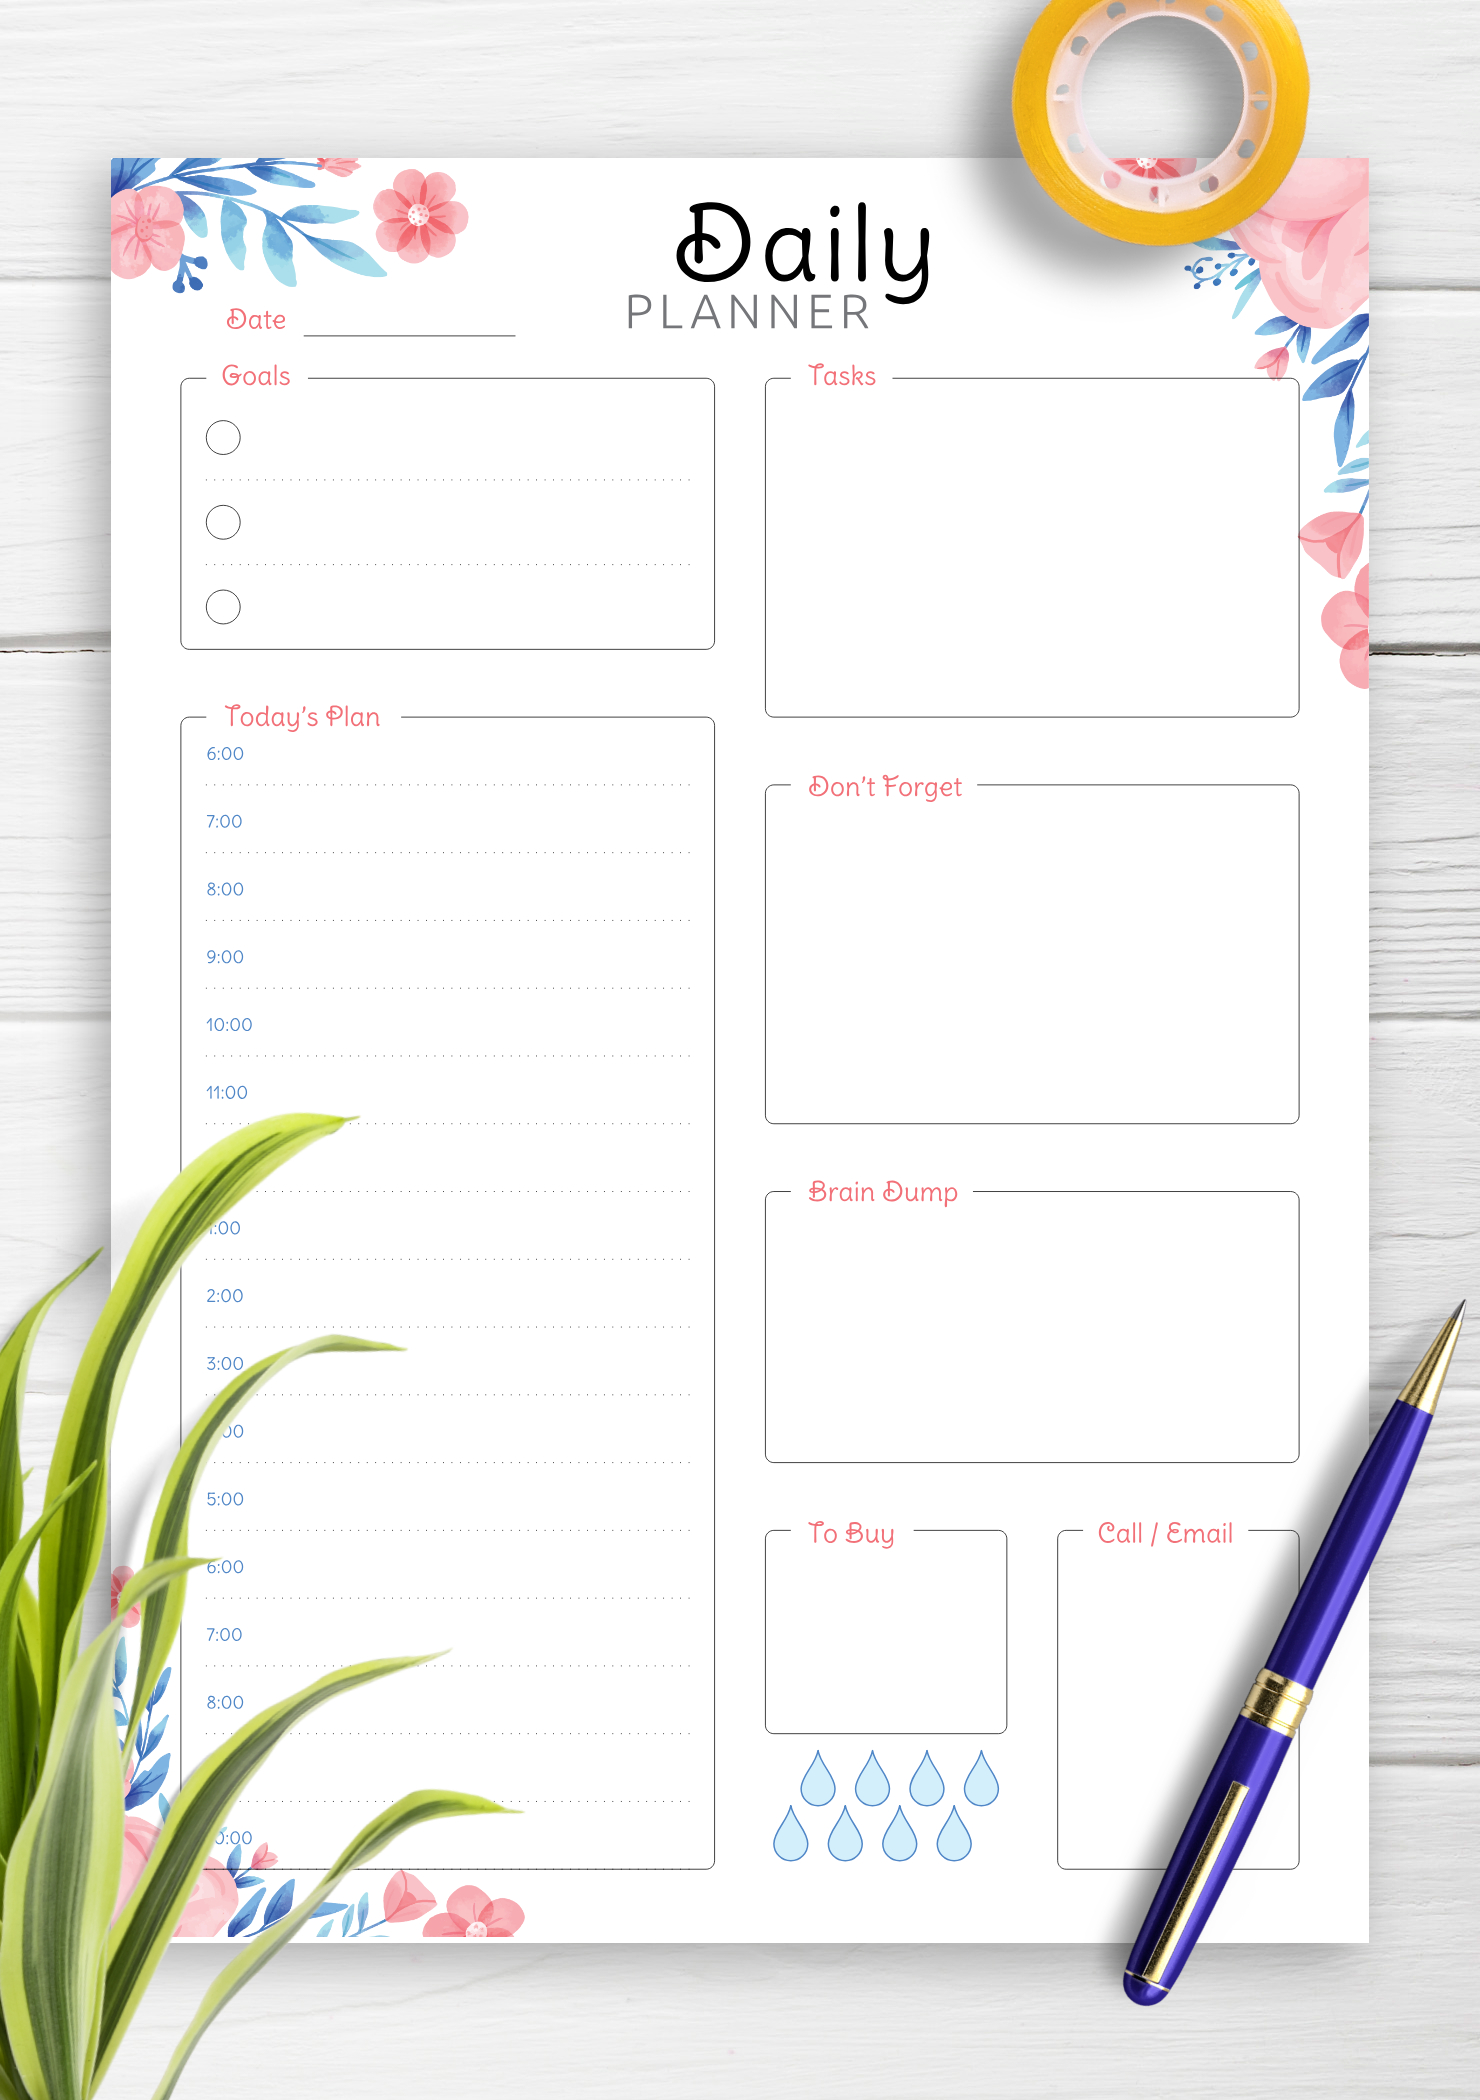 Download Printable Hourly Planner With Daily Tasks & Goals Pdf with regard to Free Printable Hourly Calendar